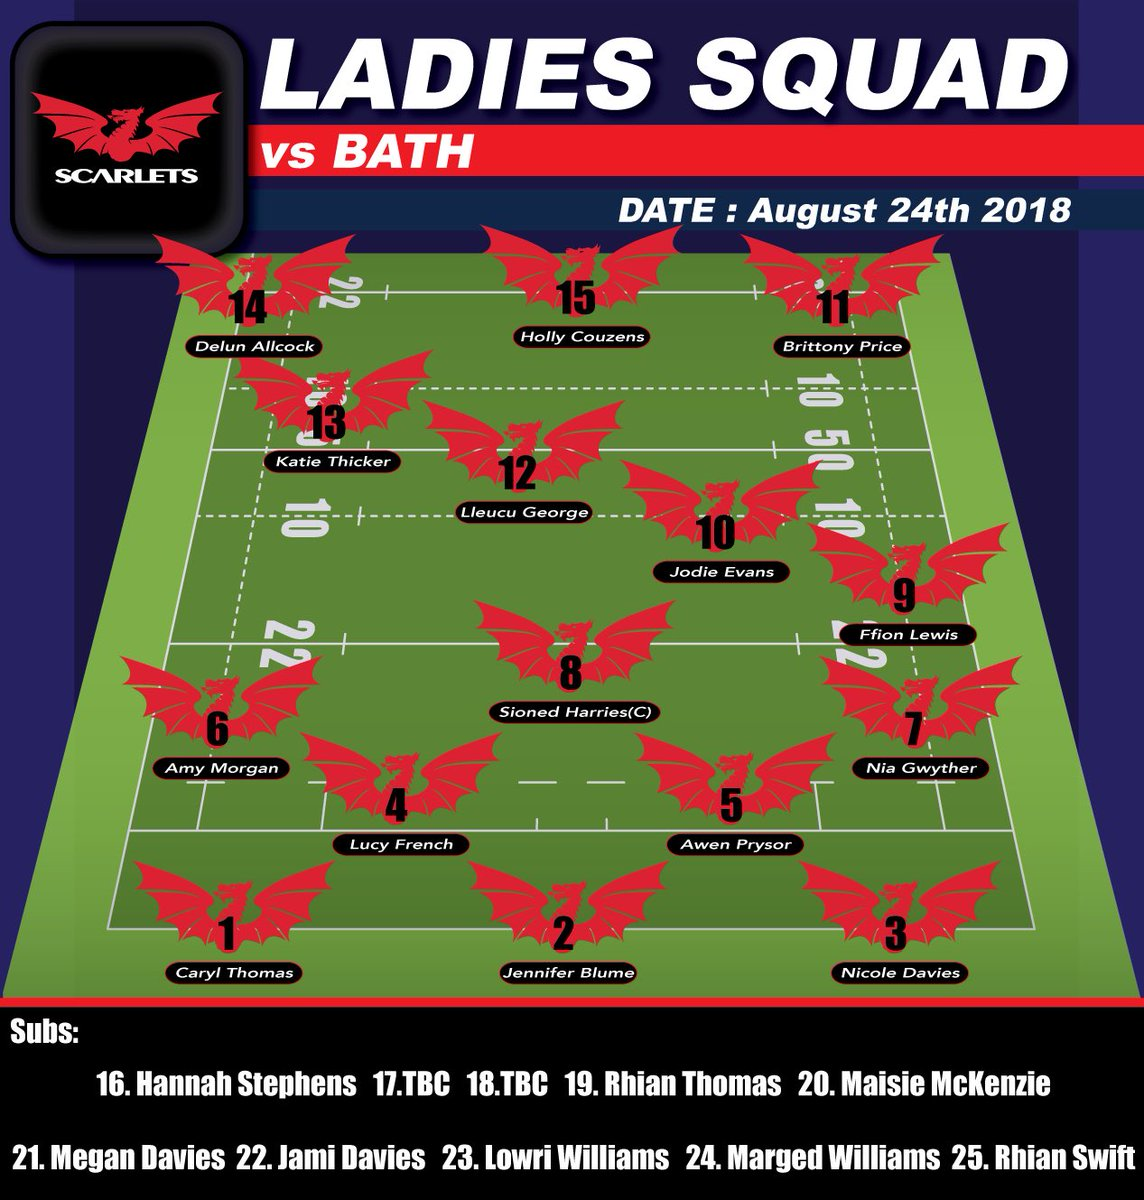 845dafaf8b3 Scarlets Ladies, Olorun Sports, Scarlets Rugby and 5 others